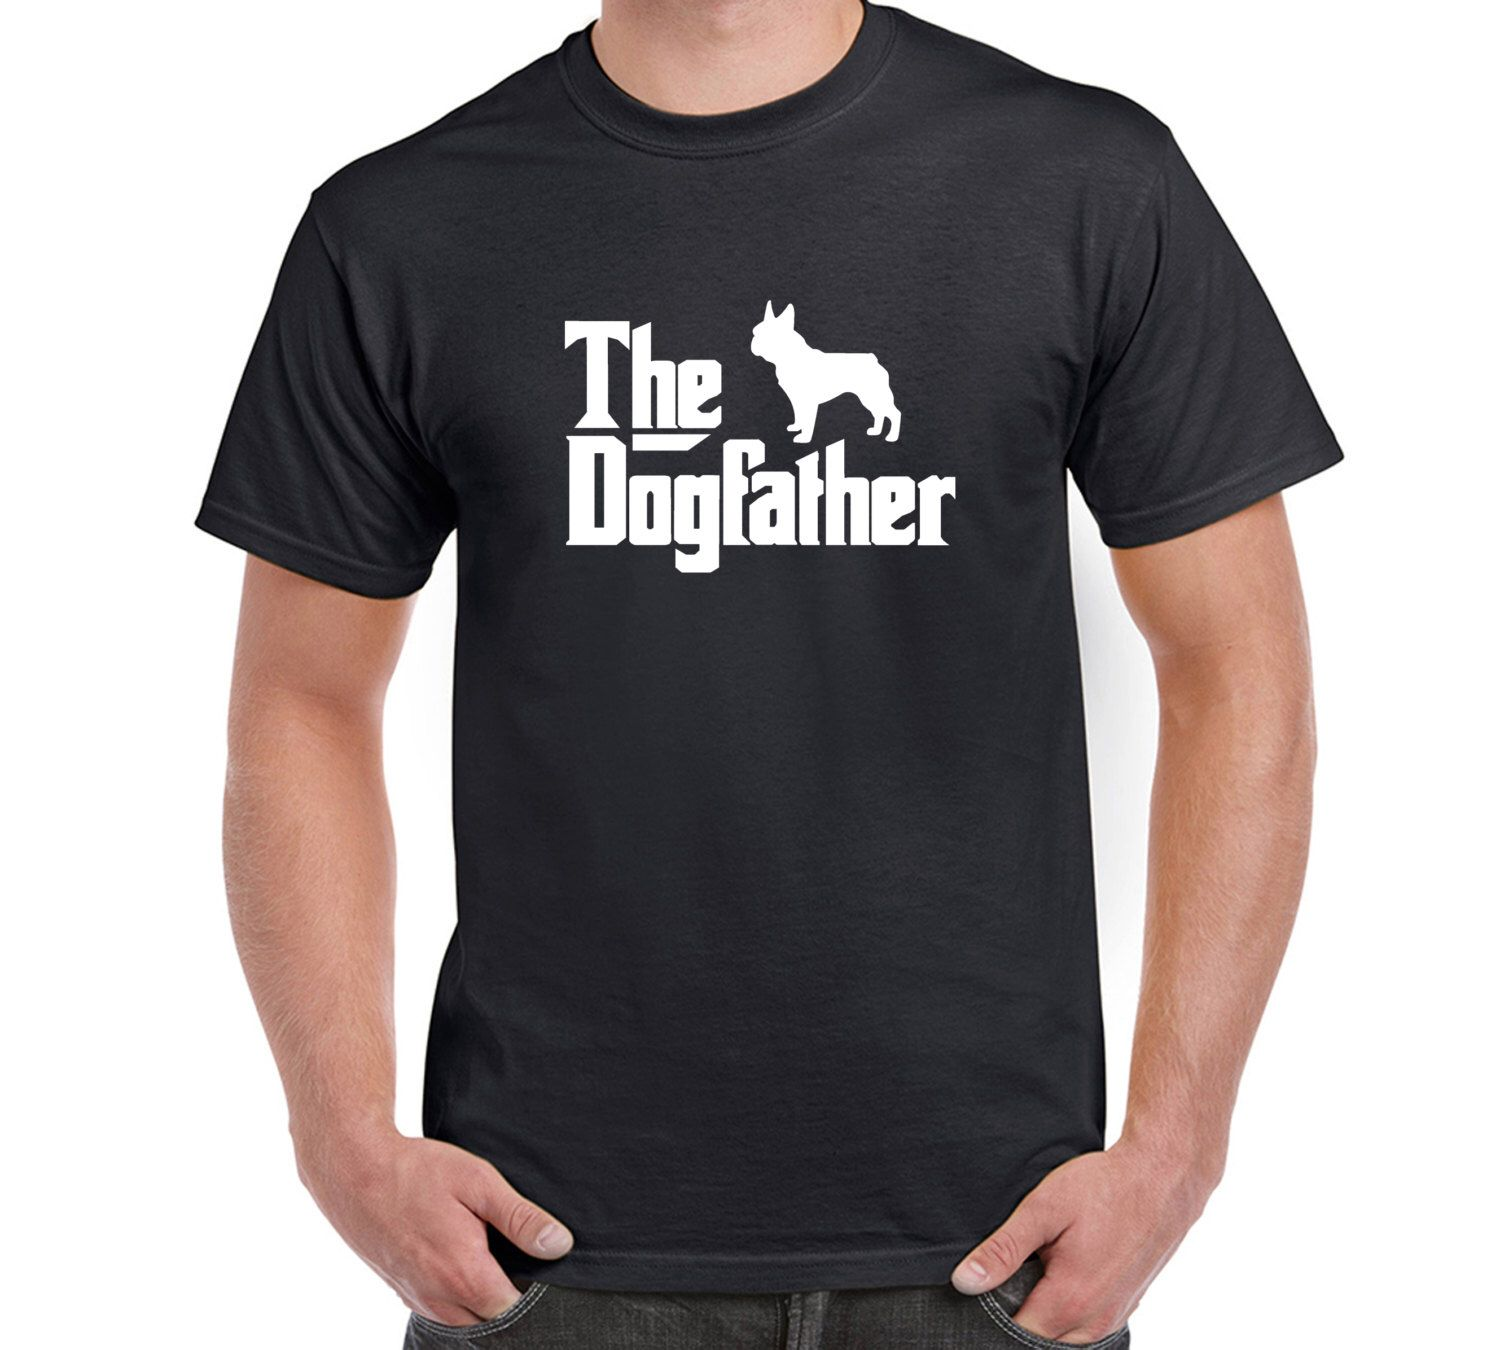 Design your own eco-friendly t-shirt - The Dogfather French Bulldog T Shirt Tee Dog The Godfather Doberman